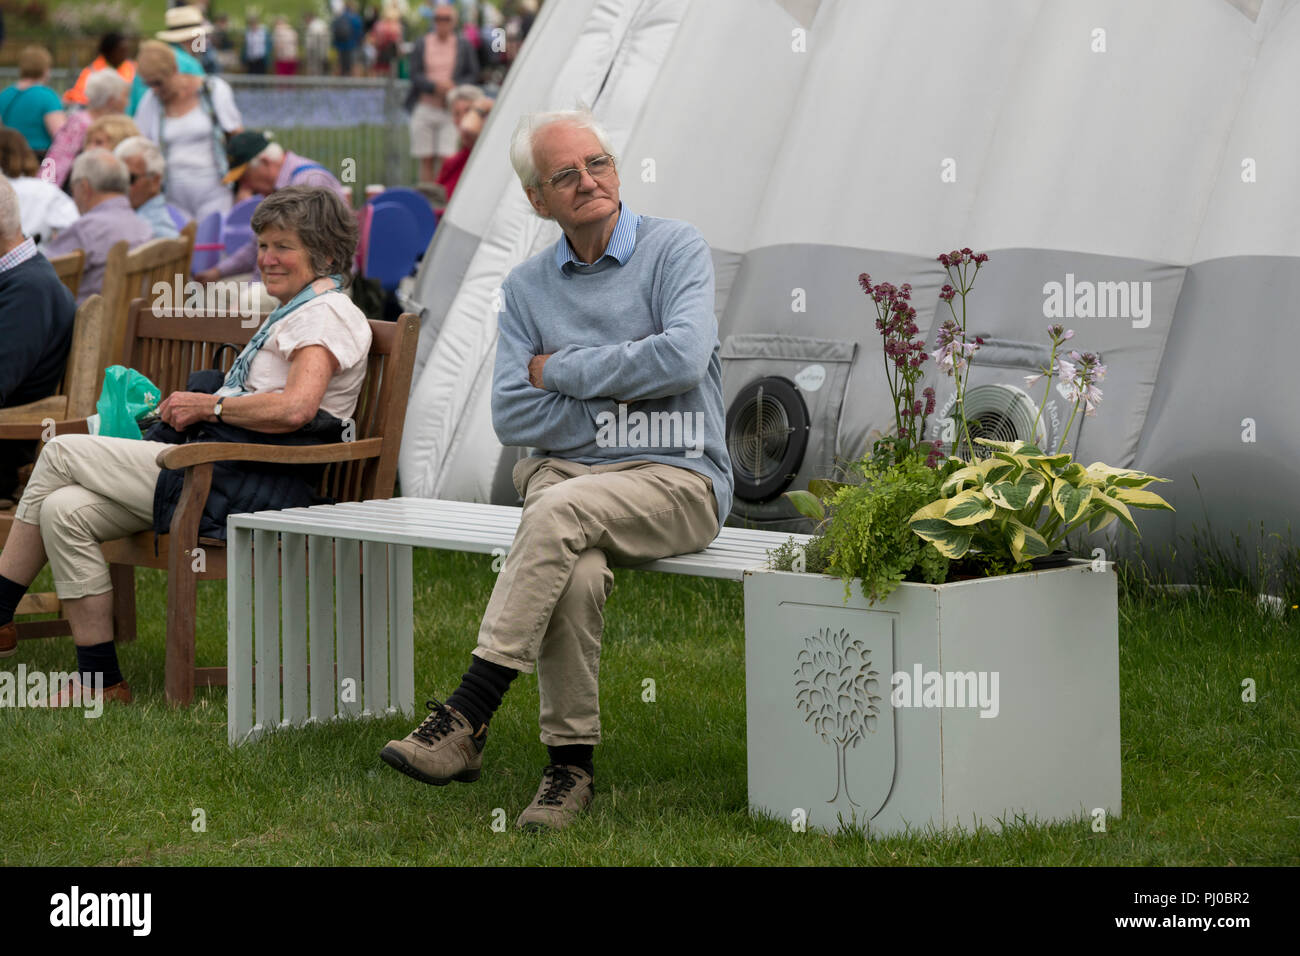 Senior man sitting alone on white bench seat, arms folded & legs crossed, crowd of people beyond - RHS Chatsworth Flower Show, Derbyshire, England, UK - Stock Image